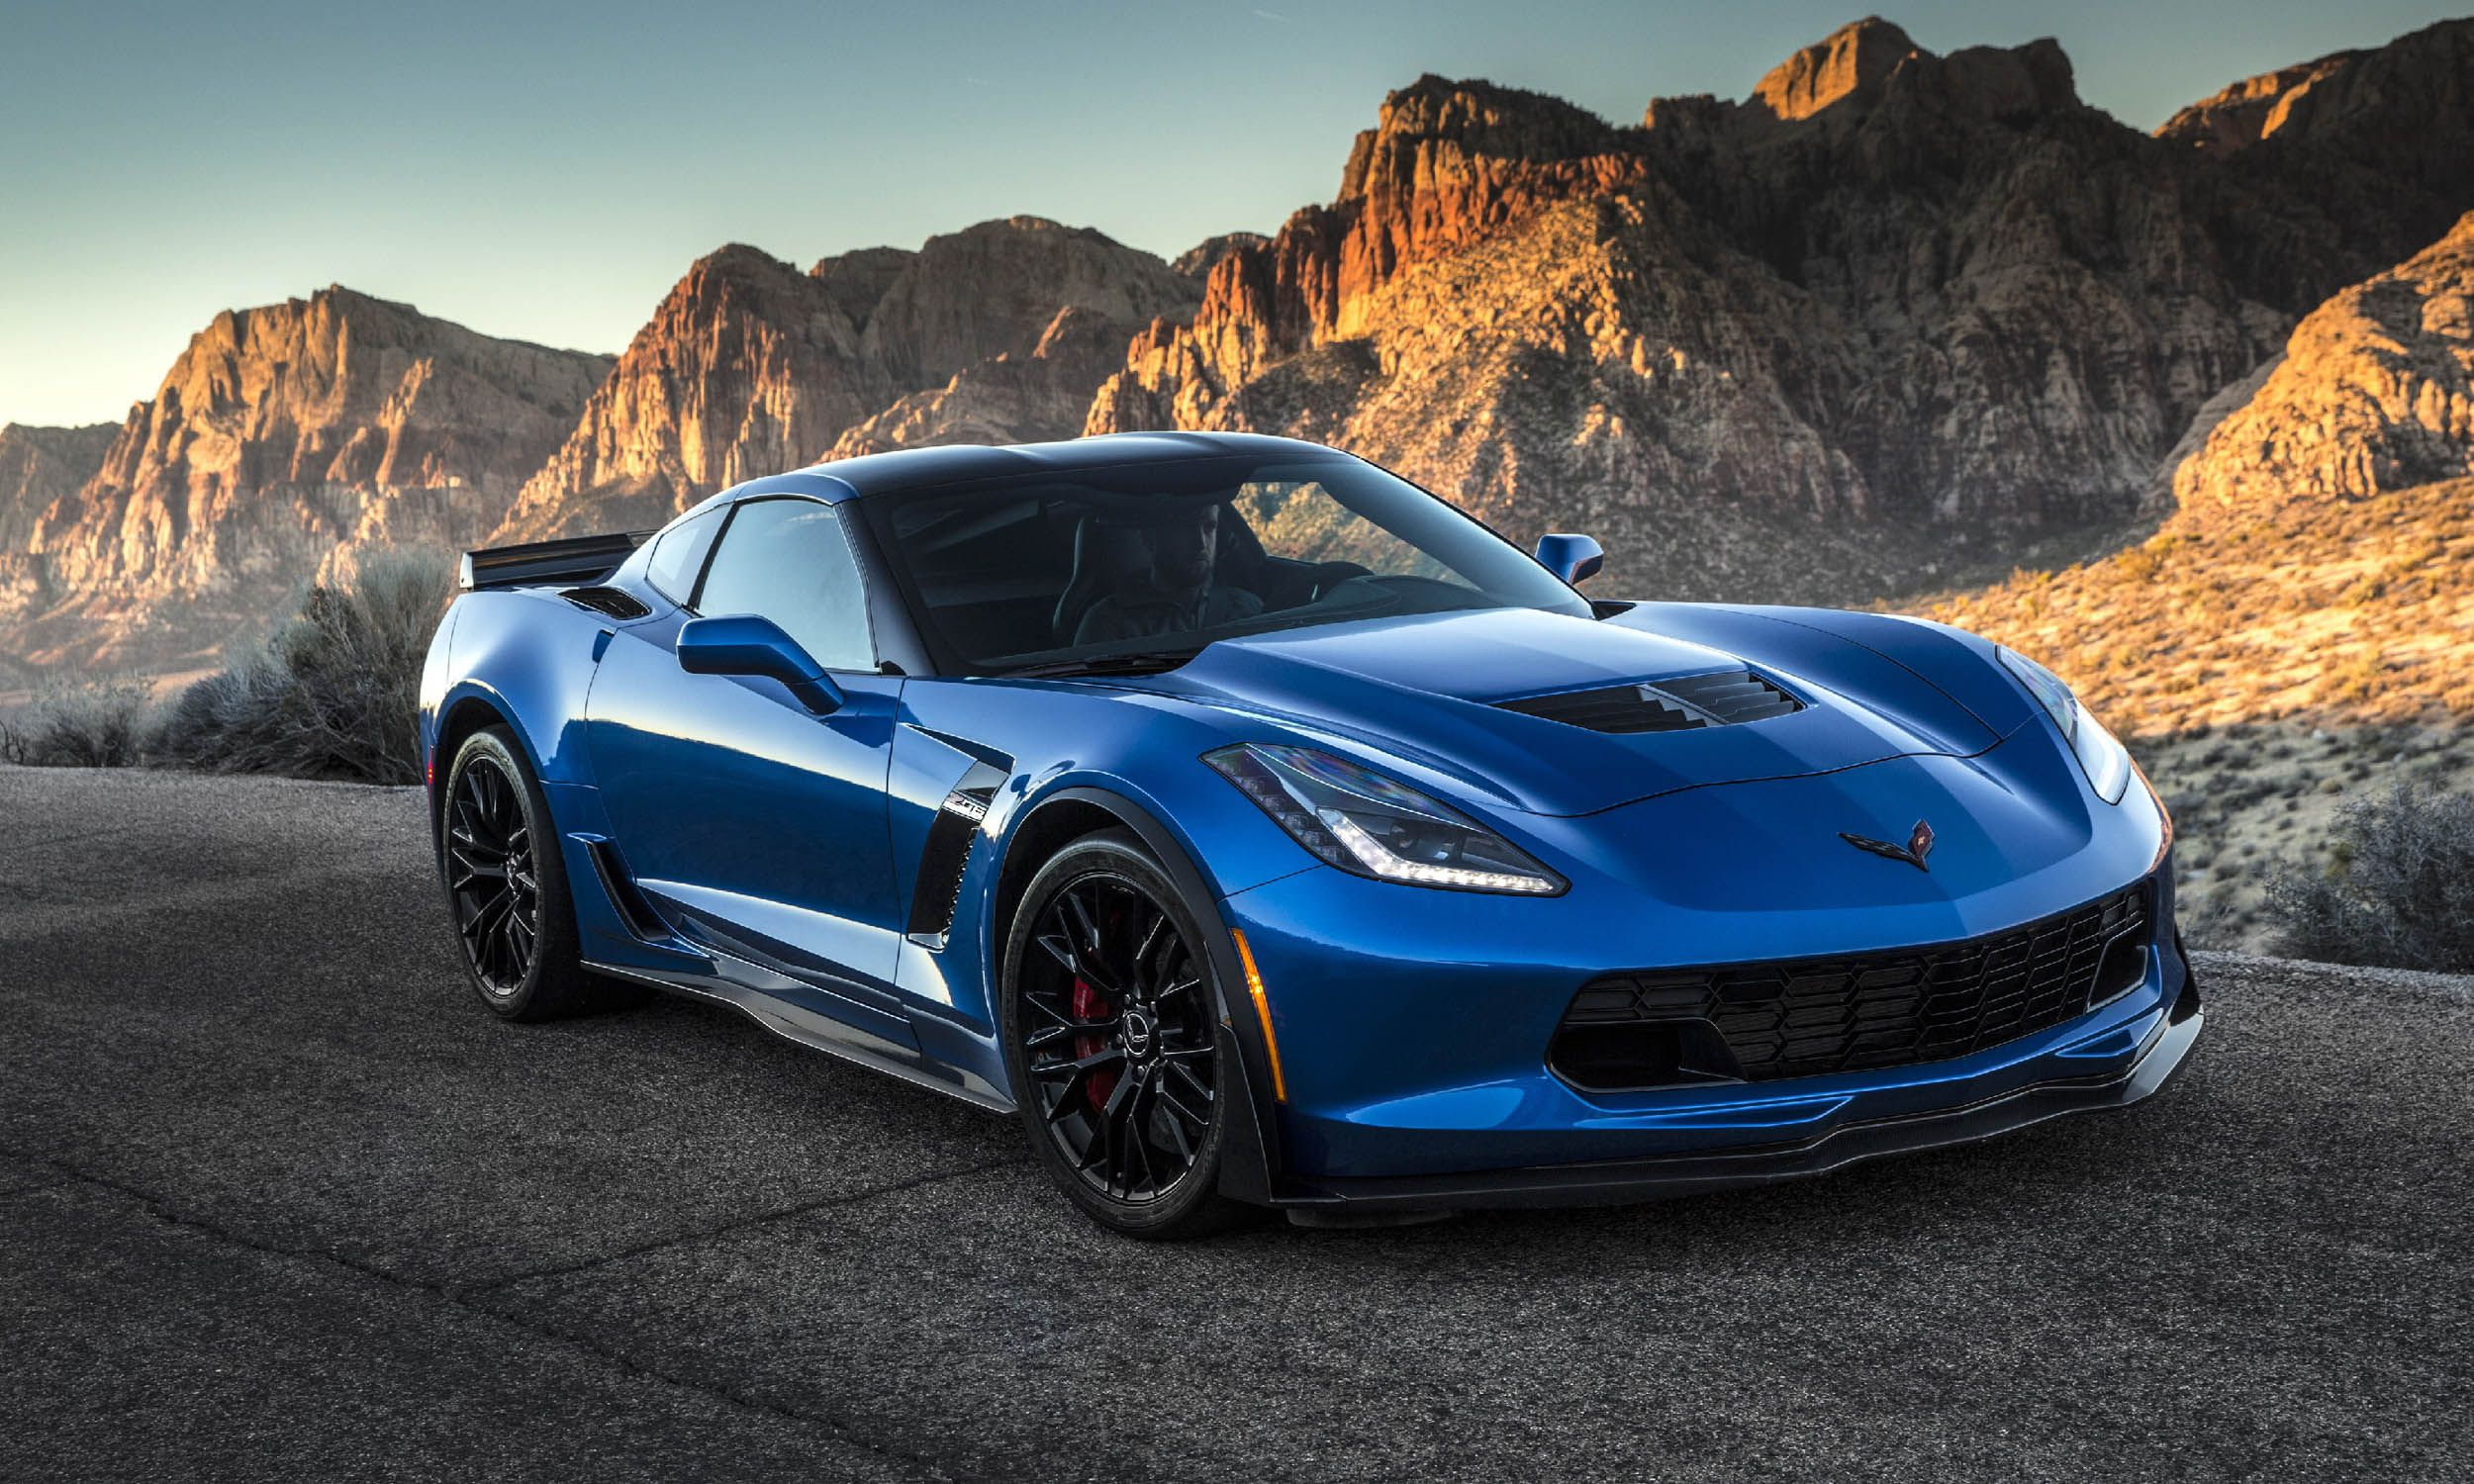 In production since 1953 the Corvette is often referred to as